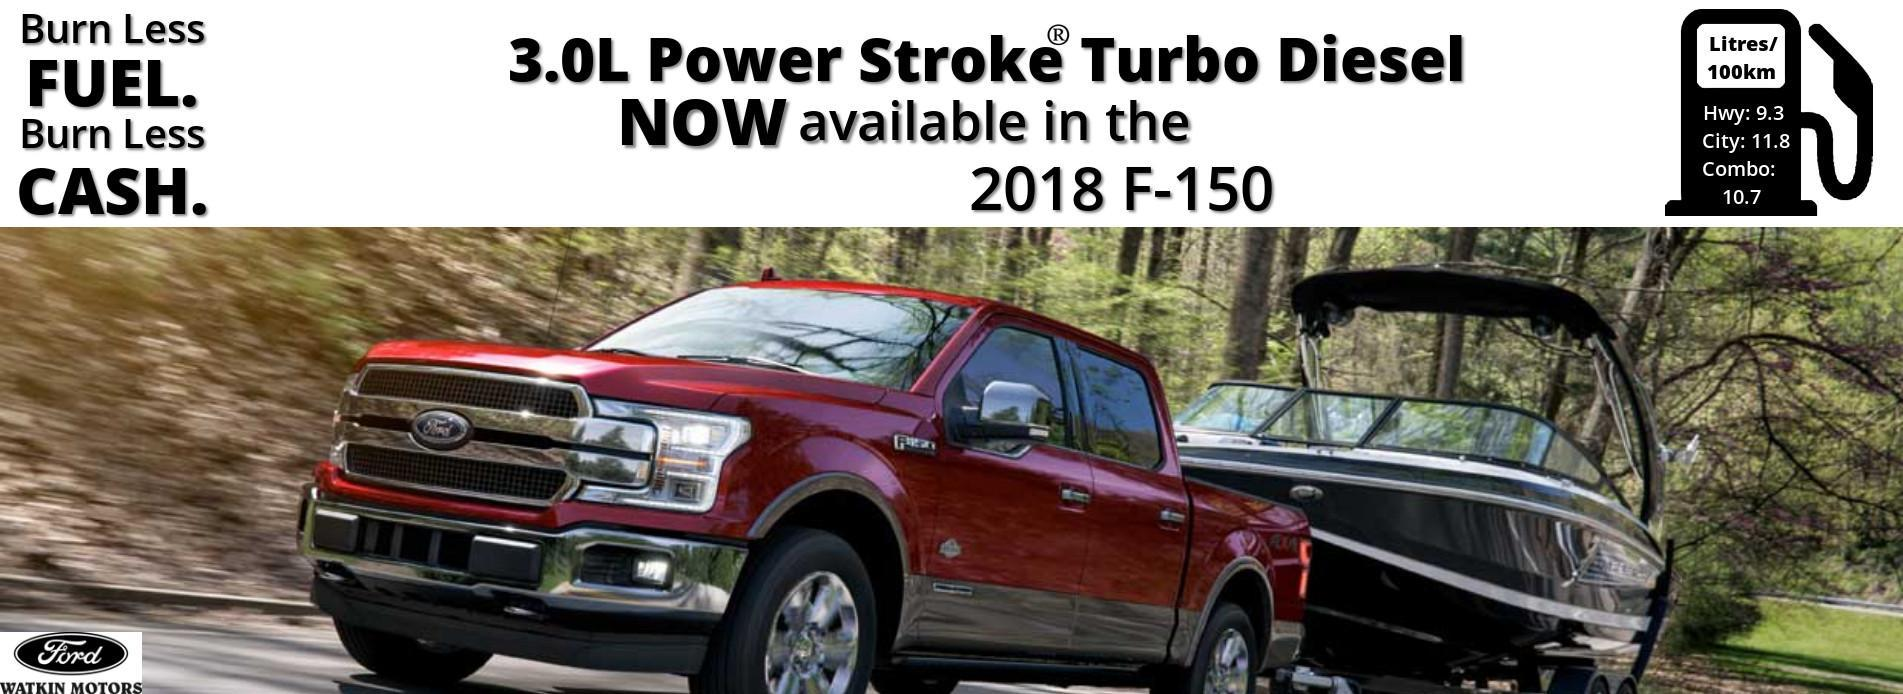 Vernon New And Used Car Truck Dealer Watkin Motors Ford Location Of Fuel Filter On A 2012 650 2018 F 150 Power Stroke Diesel